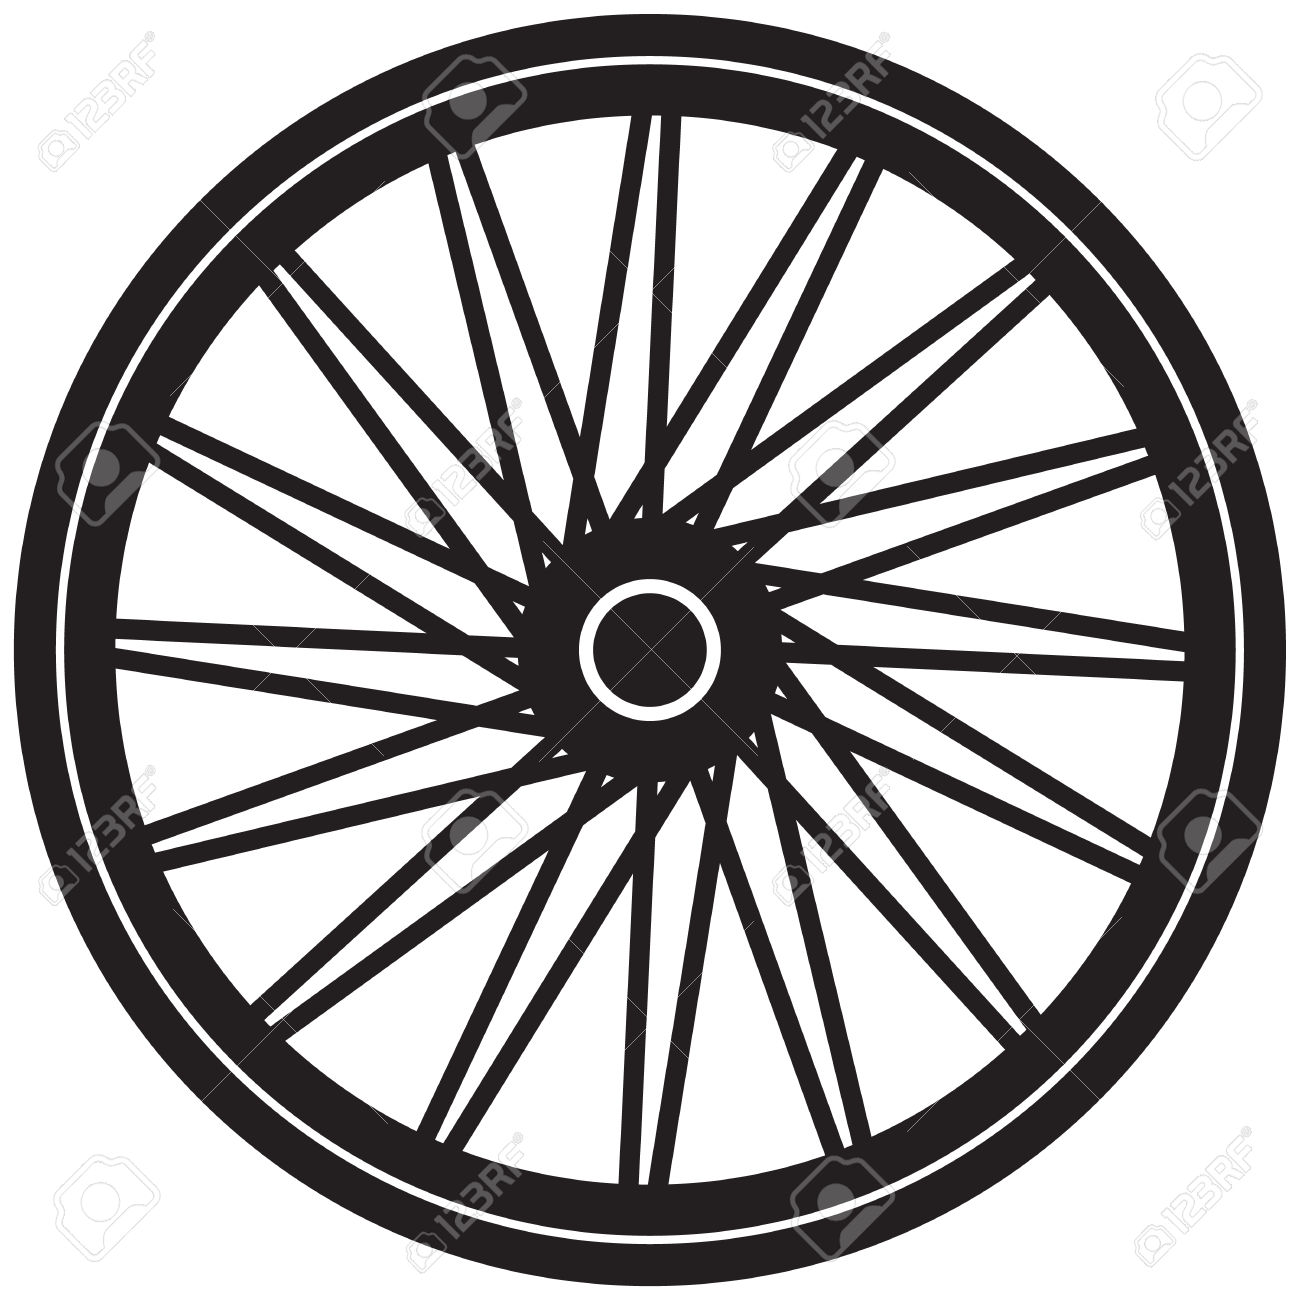 Bike wheels clipart clip art black and white library Bicycle Wheel Clipart | Free download best Bicycle Wheel Clipart on ... clip art black and white library